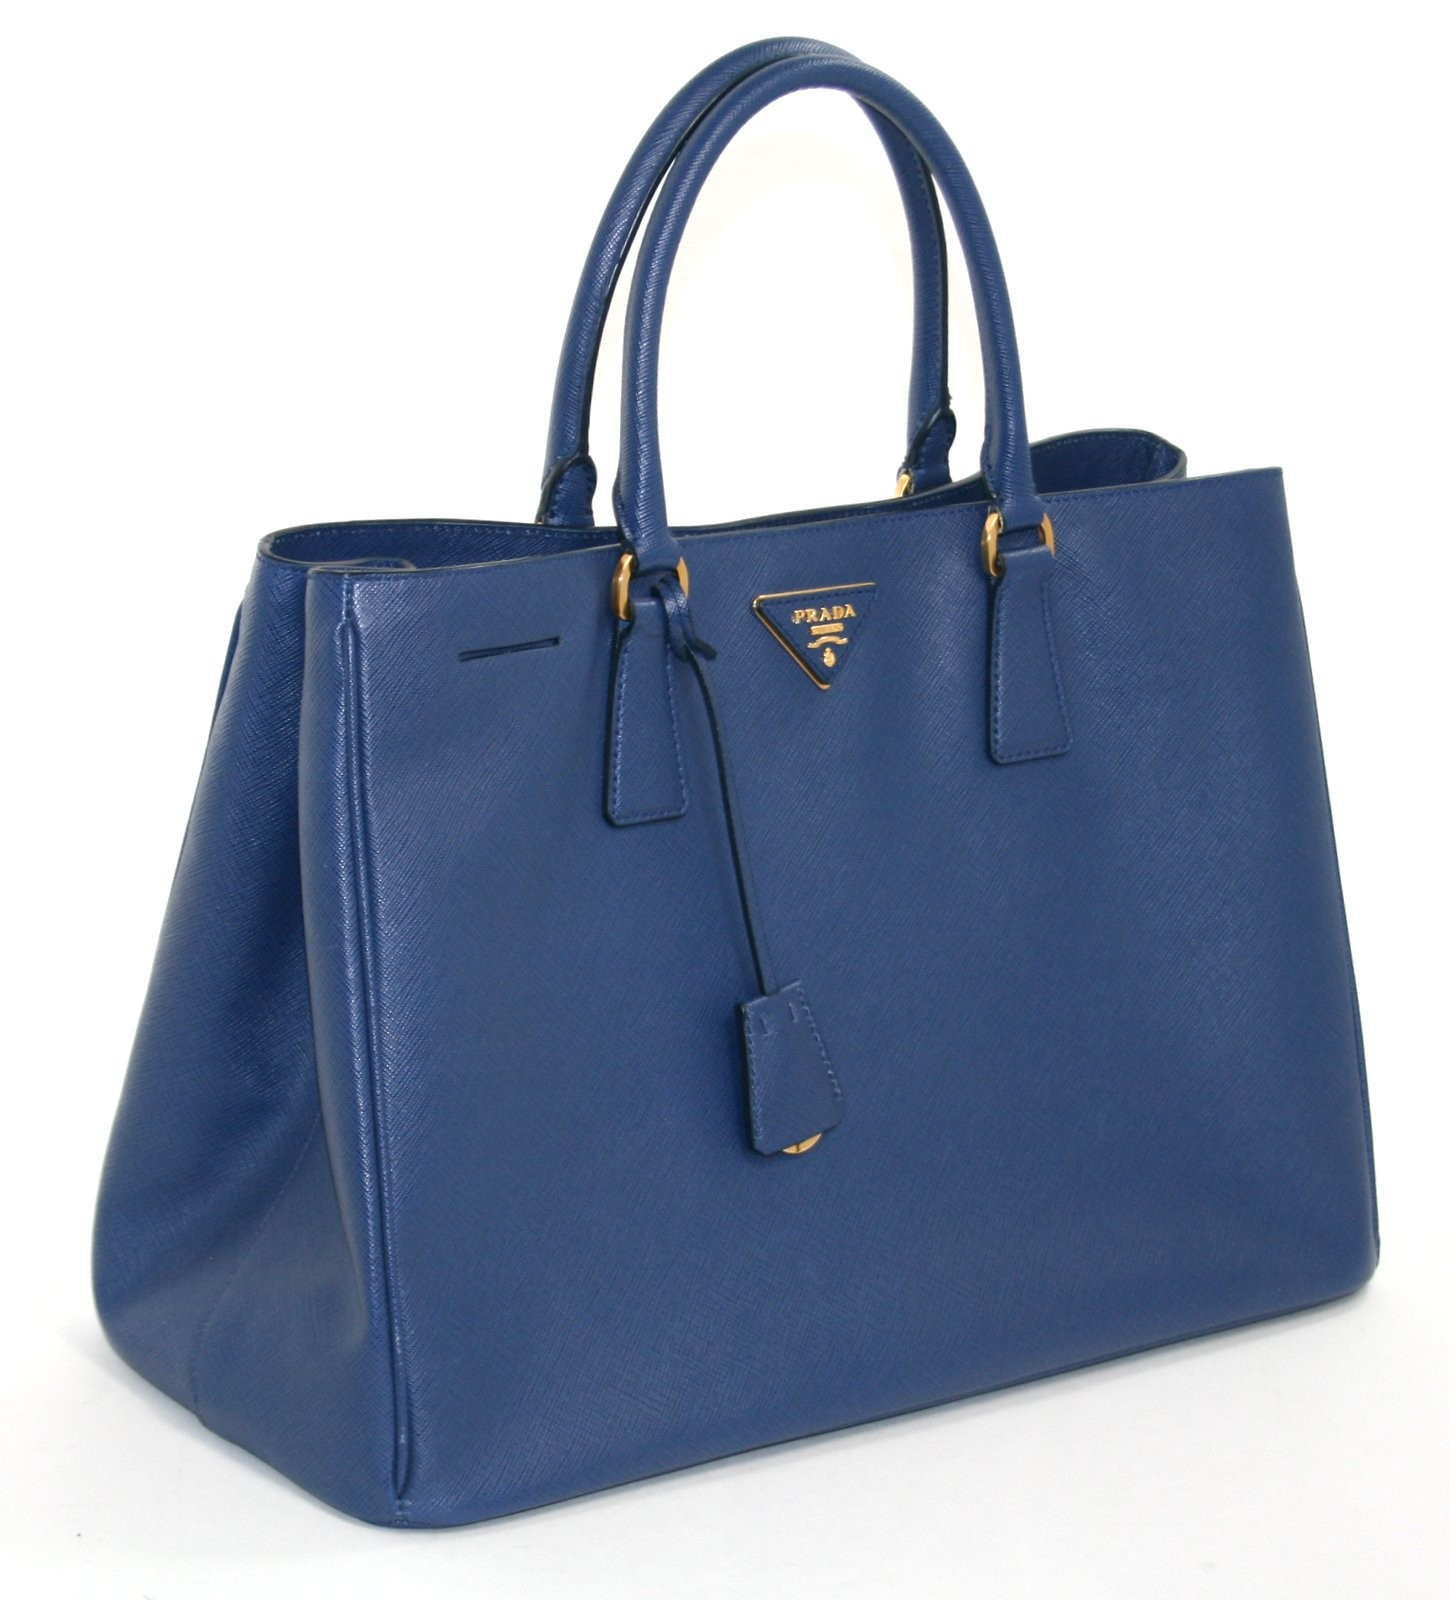 Prada Bluette Saffiano Leather Lux Tote Shopper | Portero Luxury